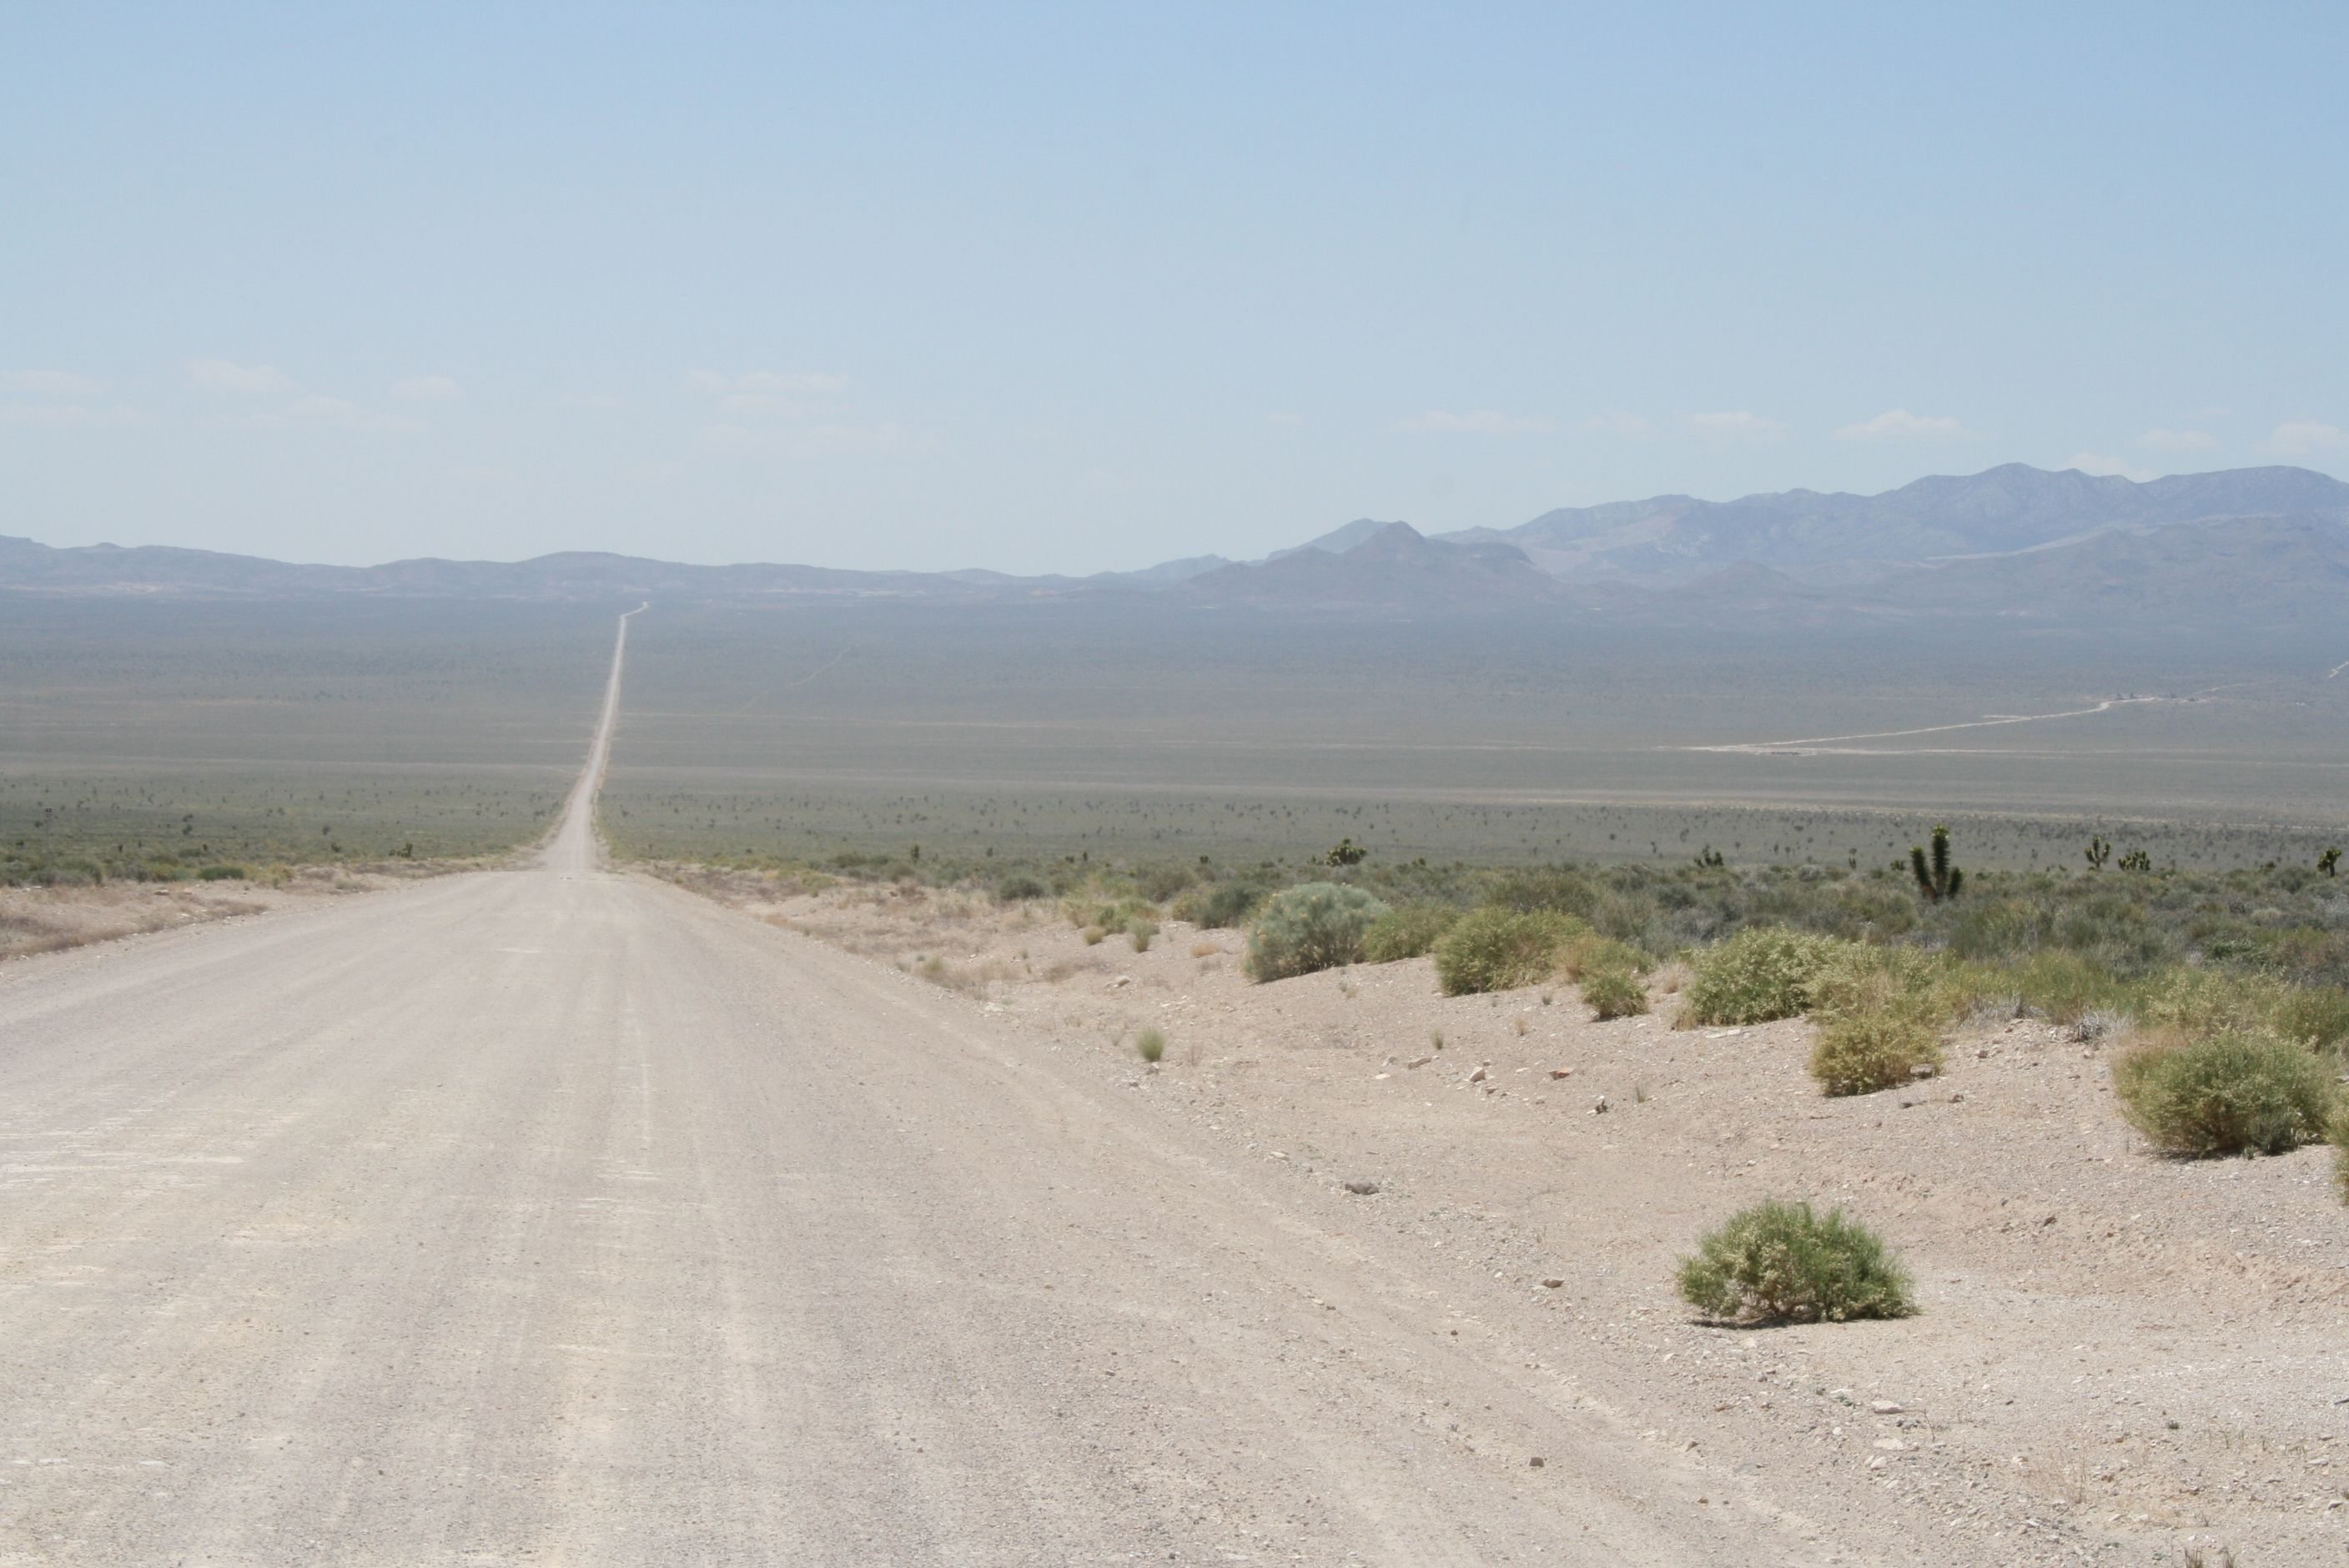 18 mile Dirt road that leads to the backgate of Area 51